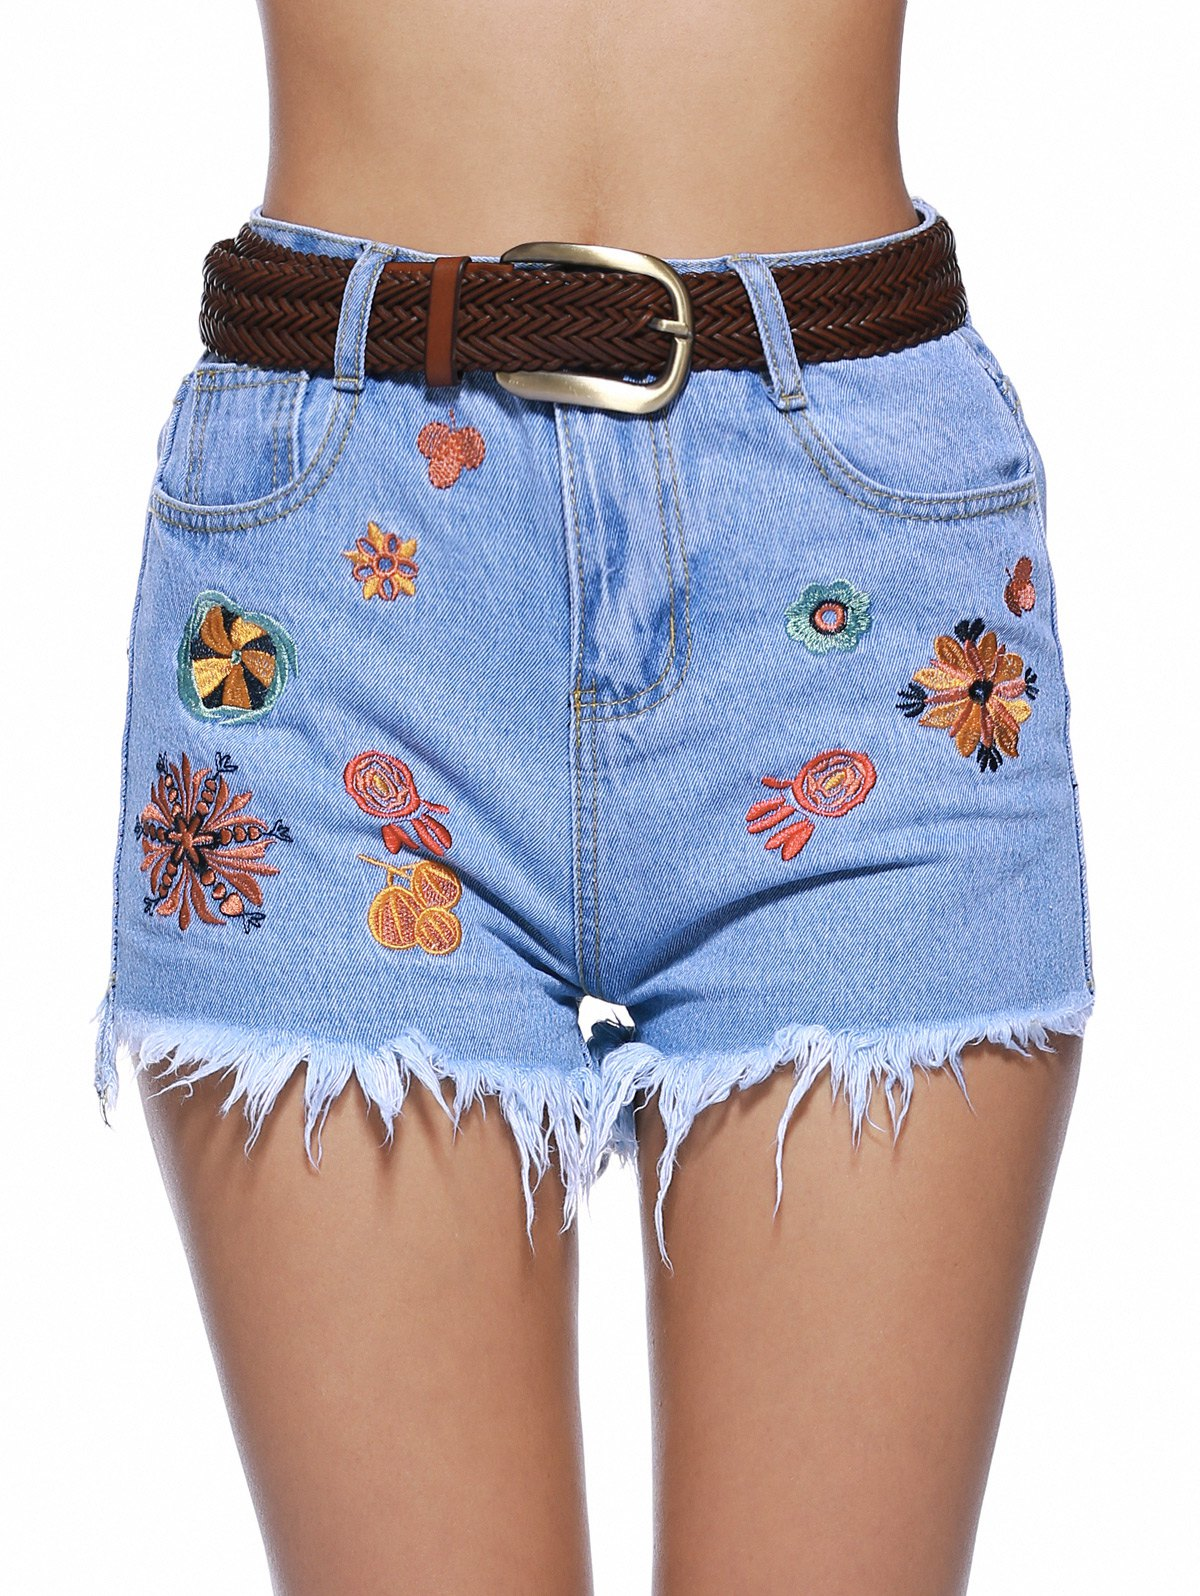 Stylish Embroidery Raw Hem Demin Shorts For Women